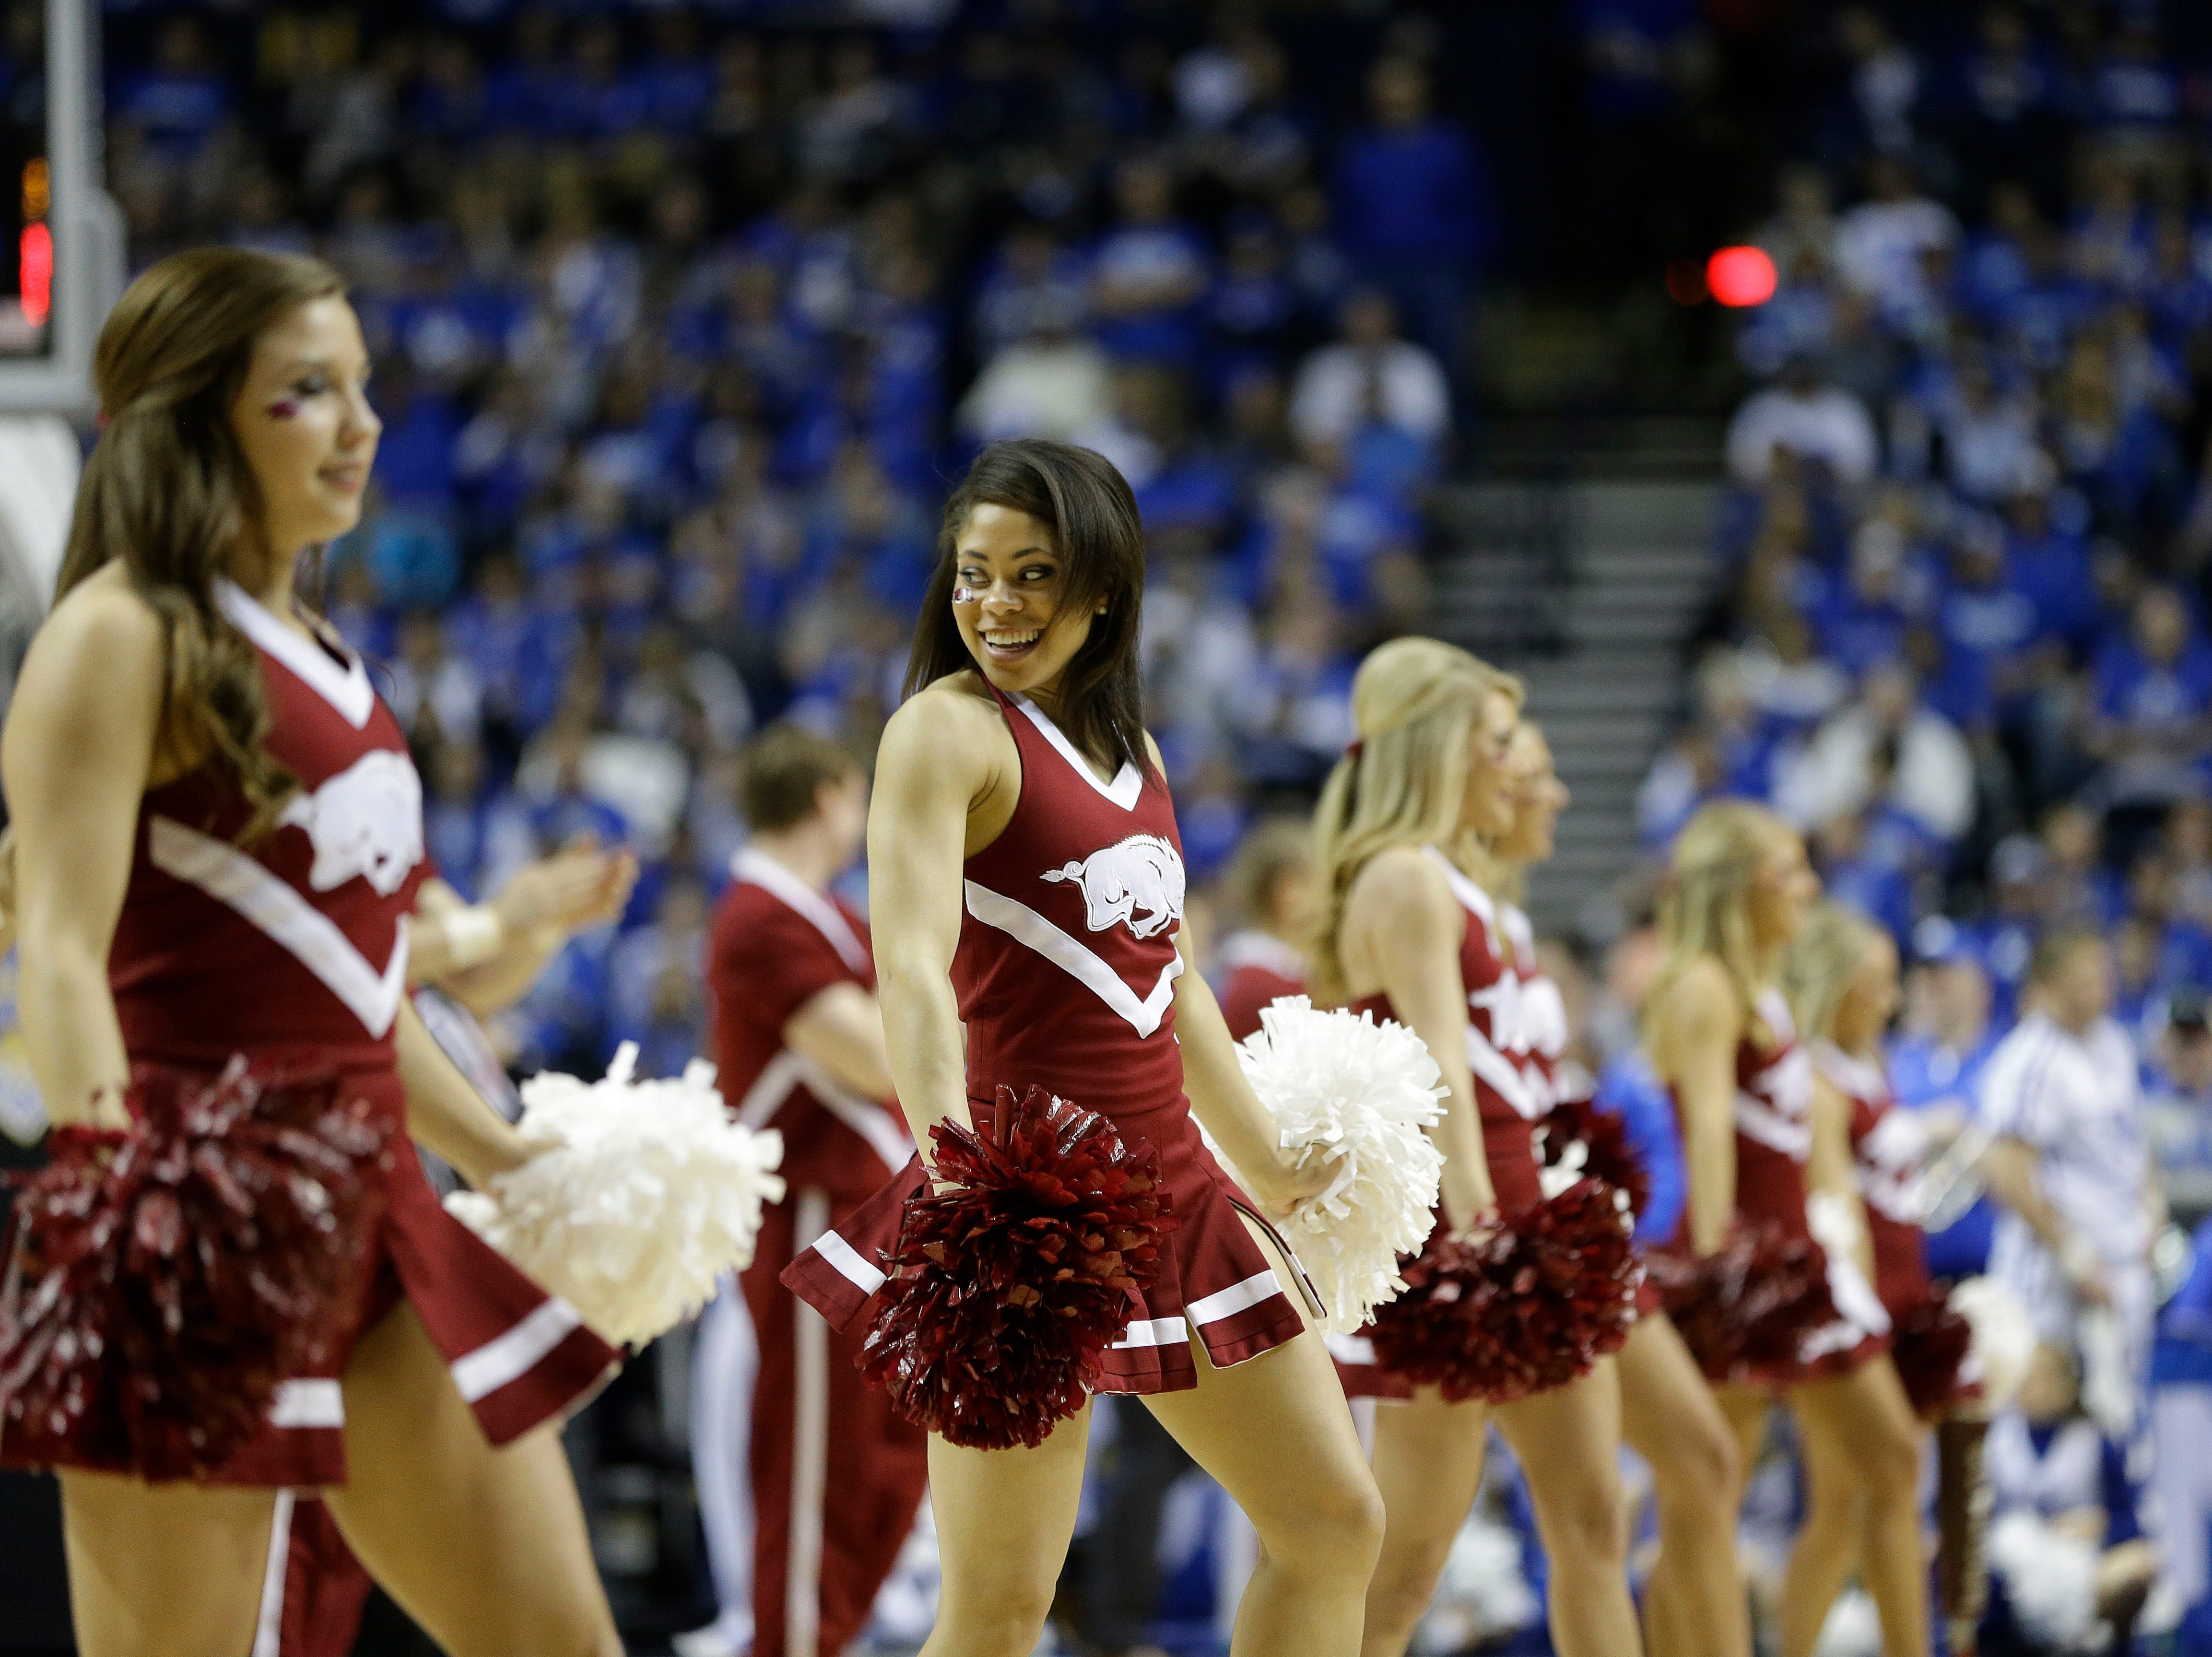 Arkansas cheerleaders perform during the first half of the NCAA college basketball Southeastern Conference tournament championship game between Kentucky and Arkansas, Sunday, March 15, 2015, in Nashville, Tenn. (AP Photo/Mark Humphrey)